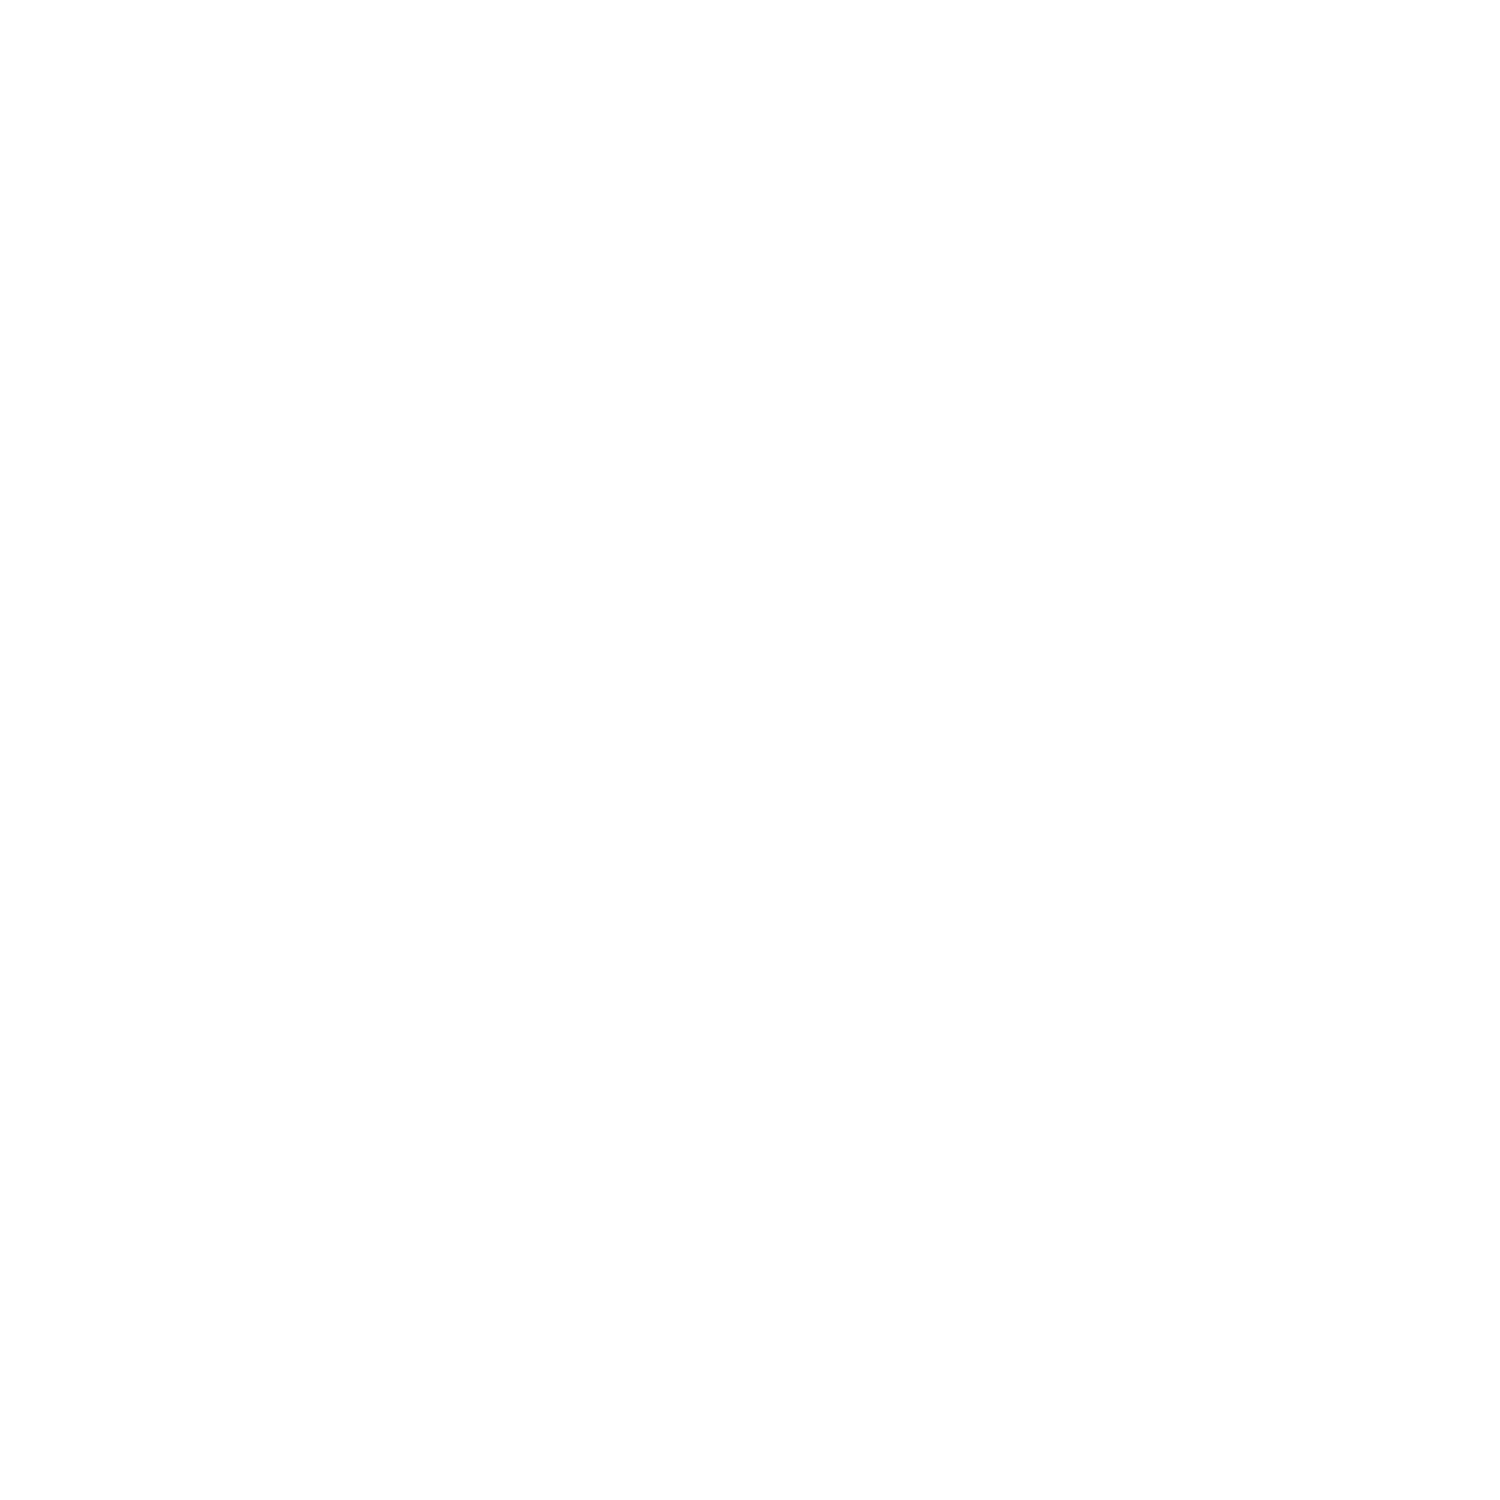 Career Aviators